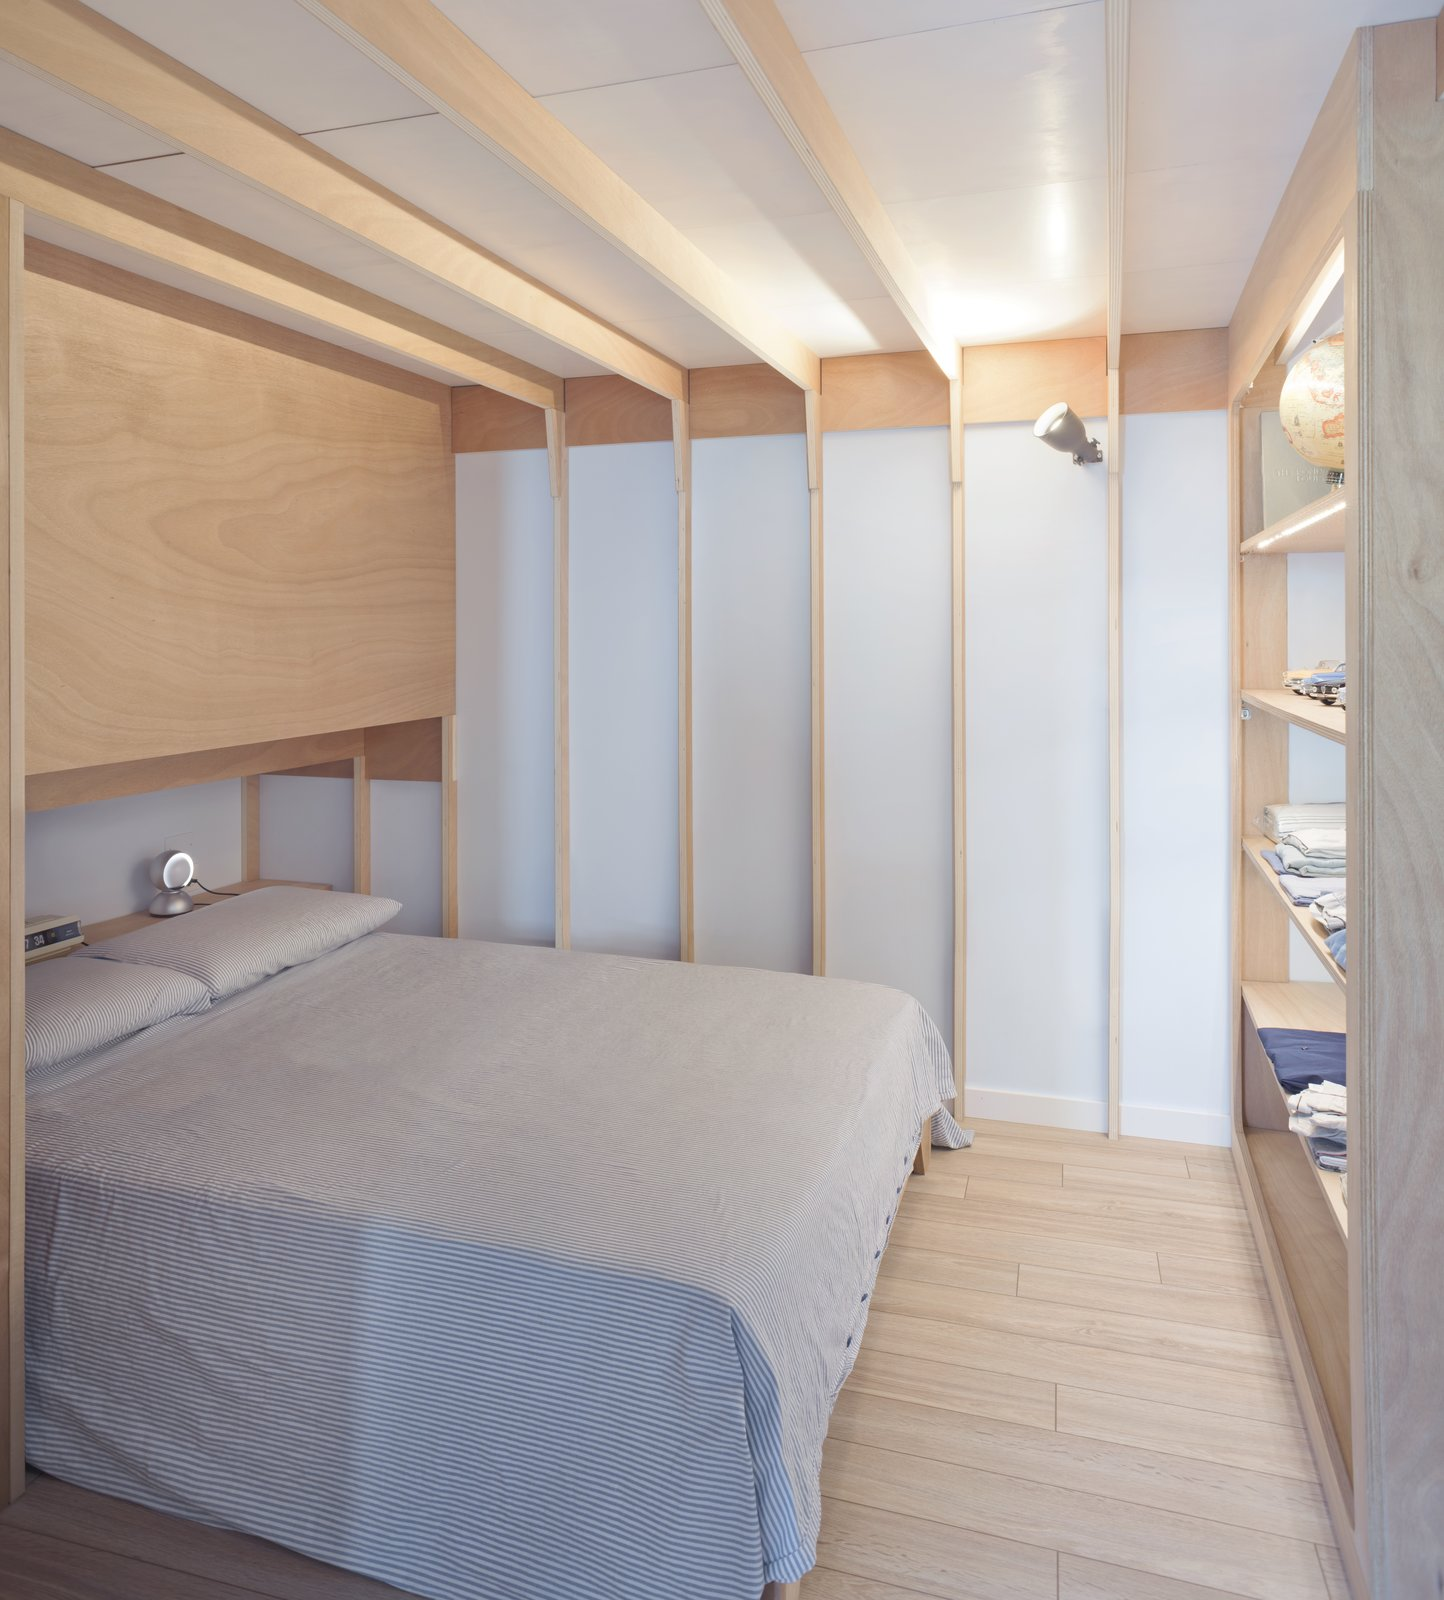 Bedroom, Bed, Wall, Light Hardwood, Shelves, and Table The master bedroom has ribbed ceilings and walls that recall nautical frames.  Best Bedroom Wall Light Hardwood Shelves Photos from A Tiny Apartment in the Italian Riviera Takes Cues From Nautical Design